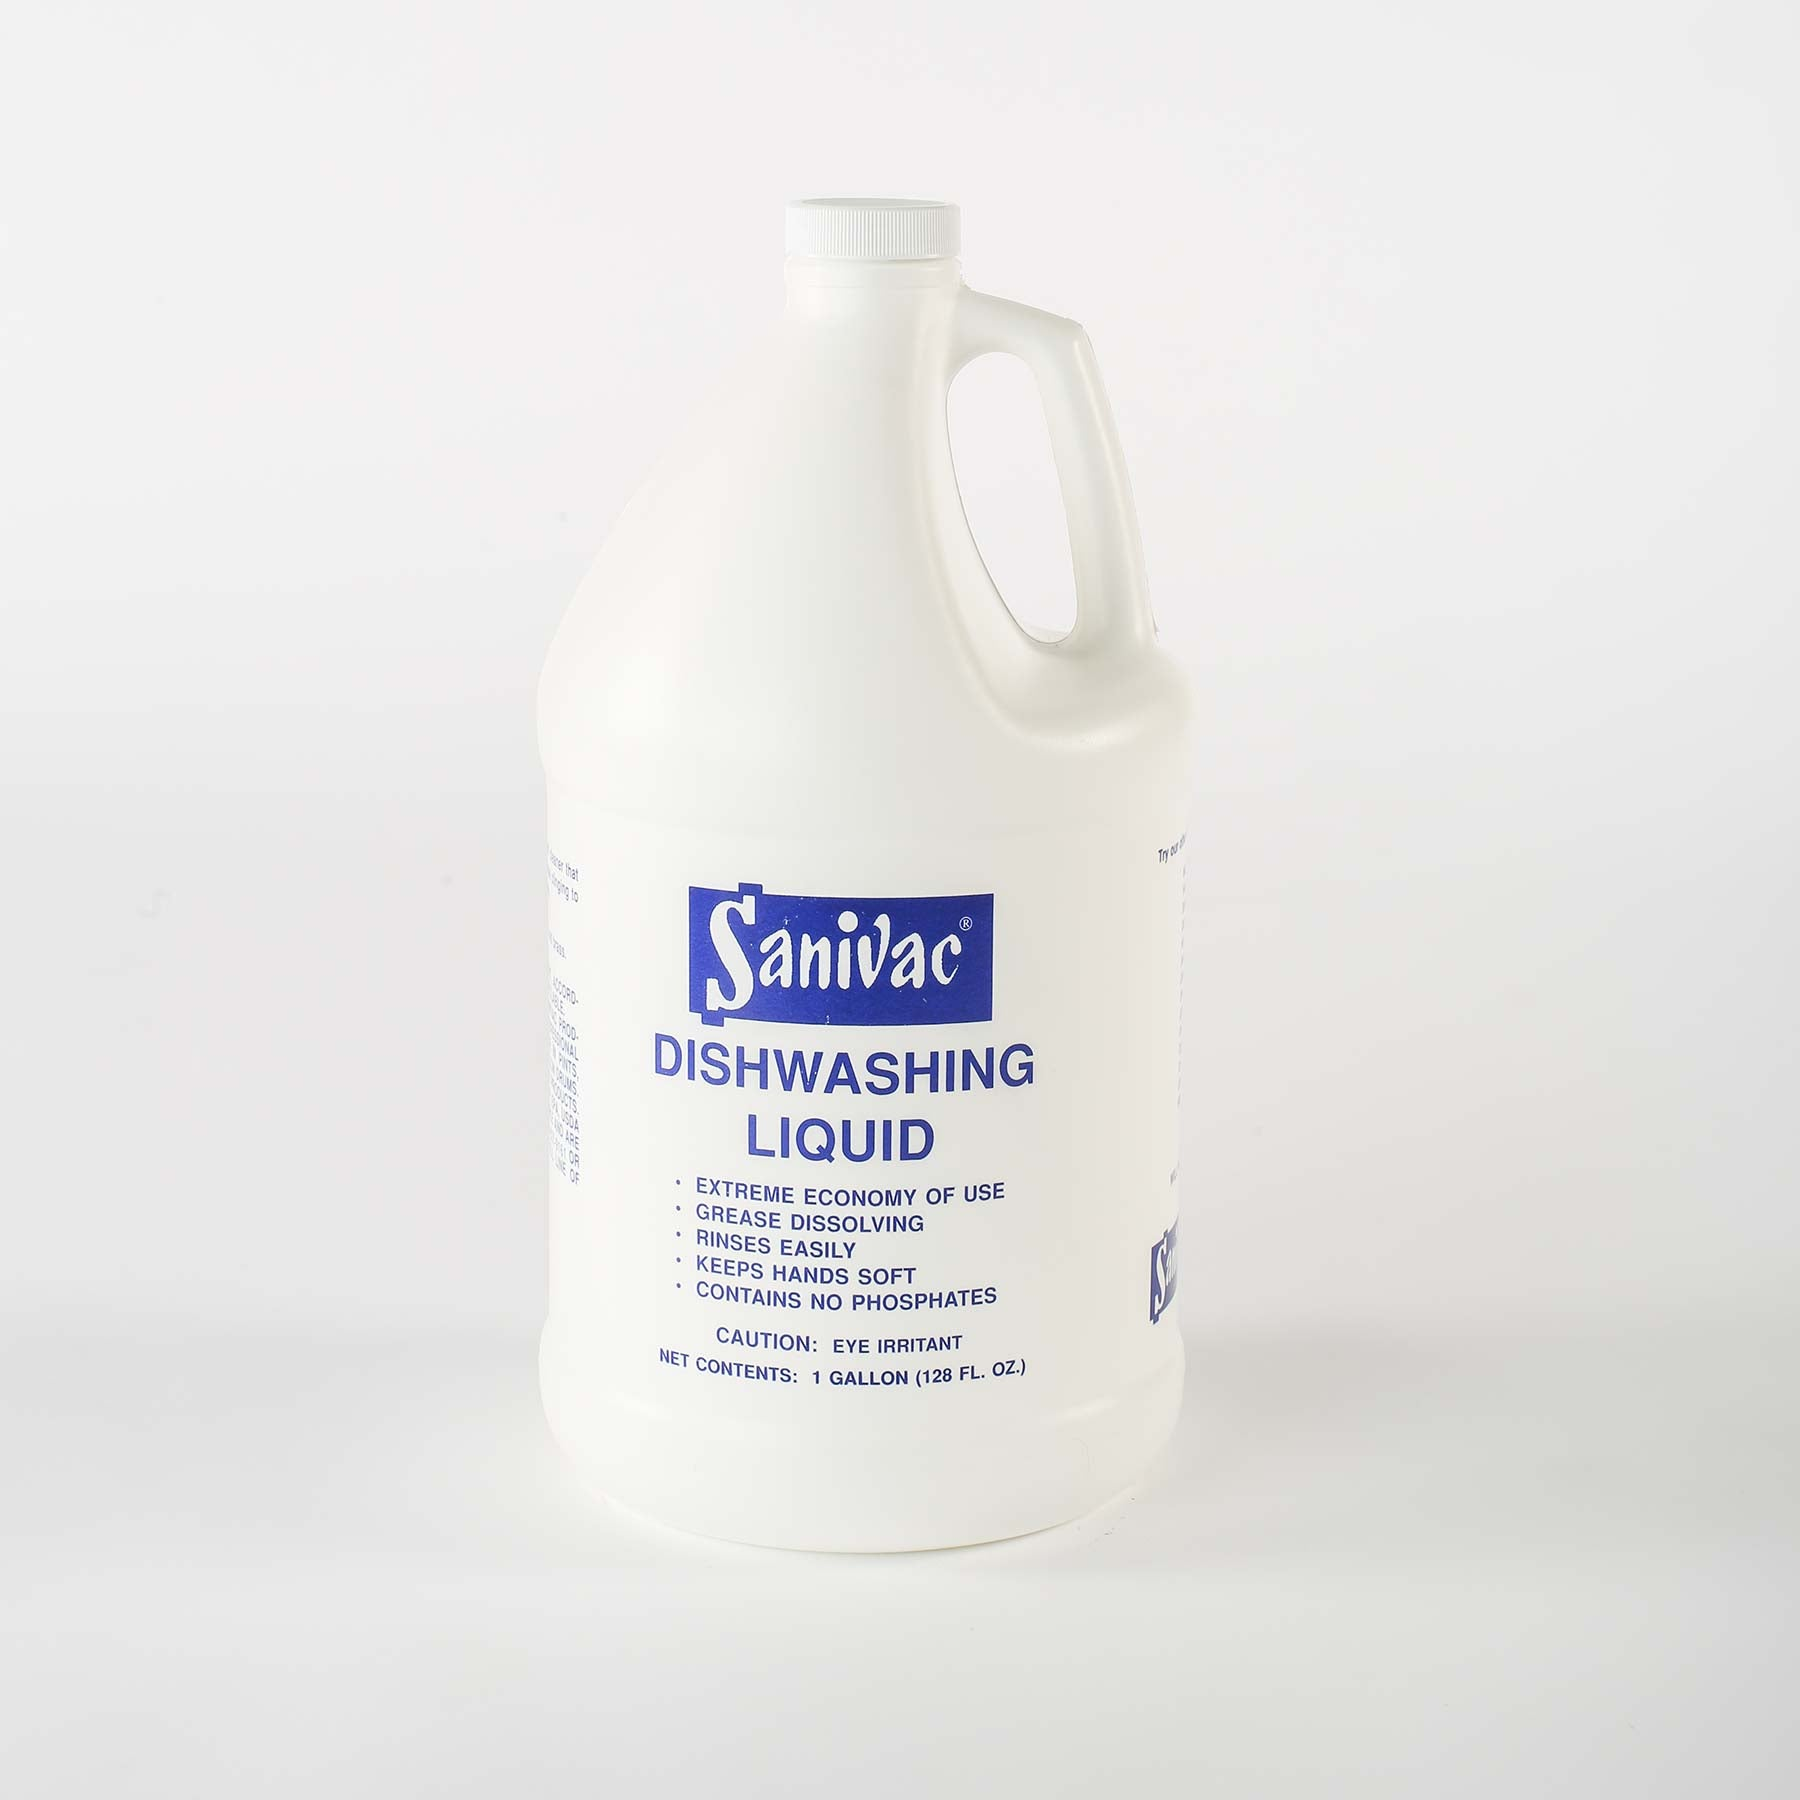 Sanivac Dishwashing Liquid - Cleaning Ideas